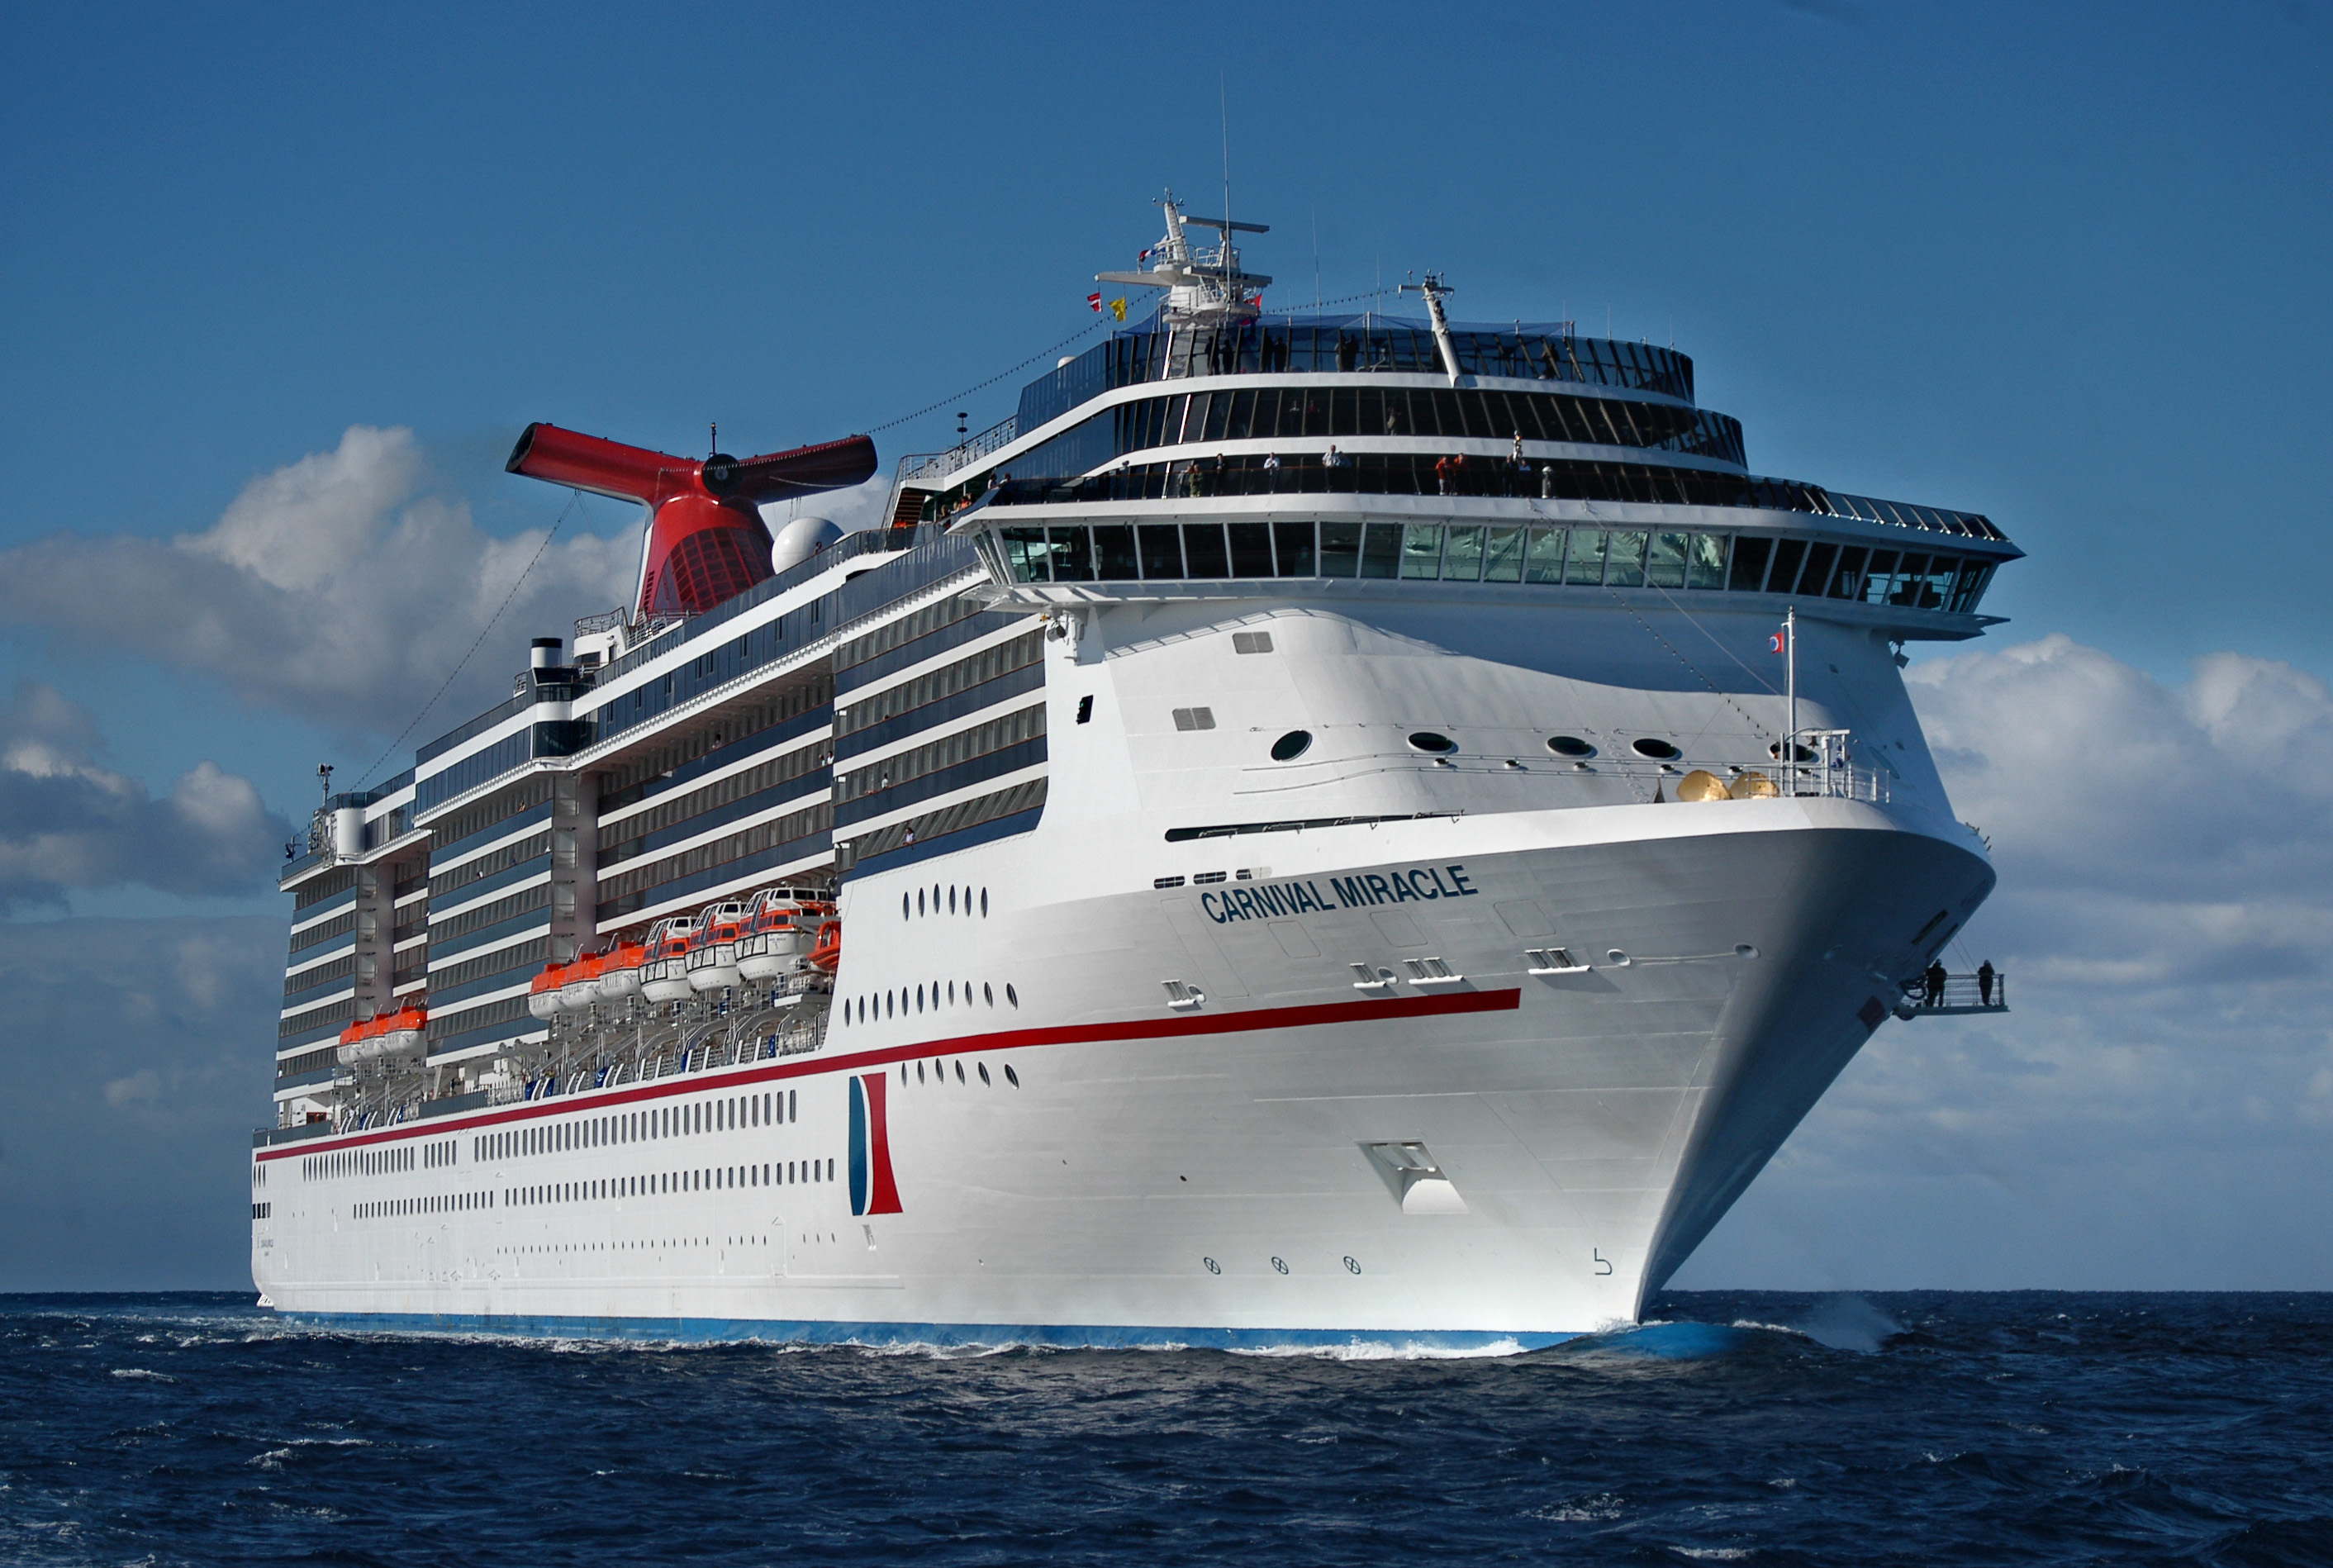 Carnival Miracle Kicks Off Year-Round Seven-Day Schedule from Tampa, Doubling Capacity at Port Tampa Bay